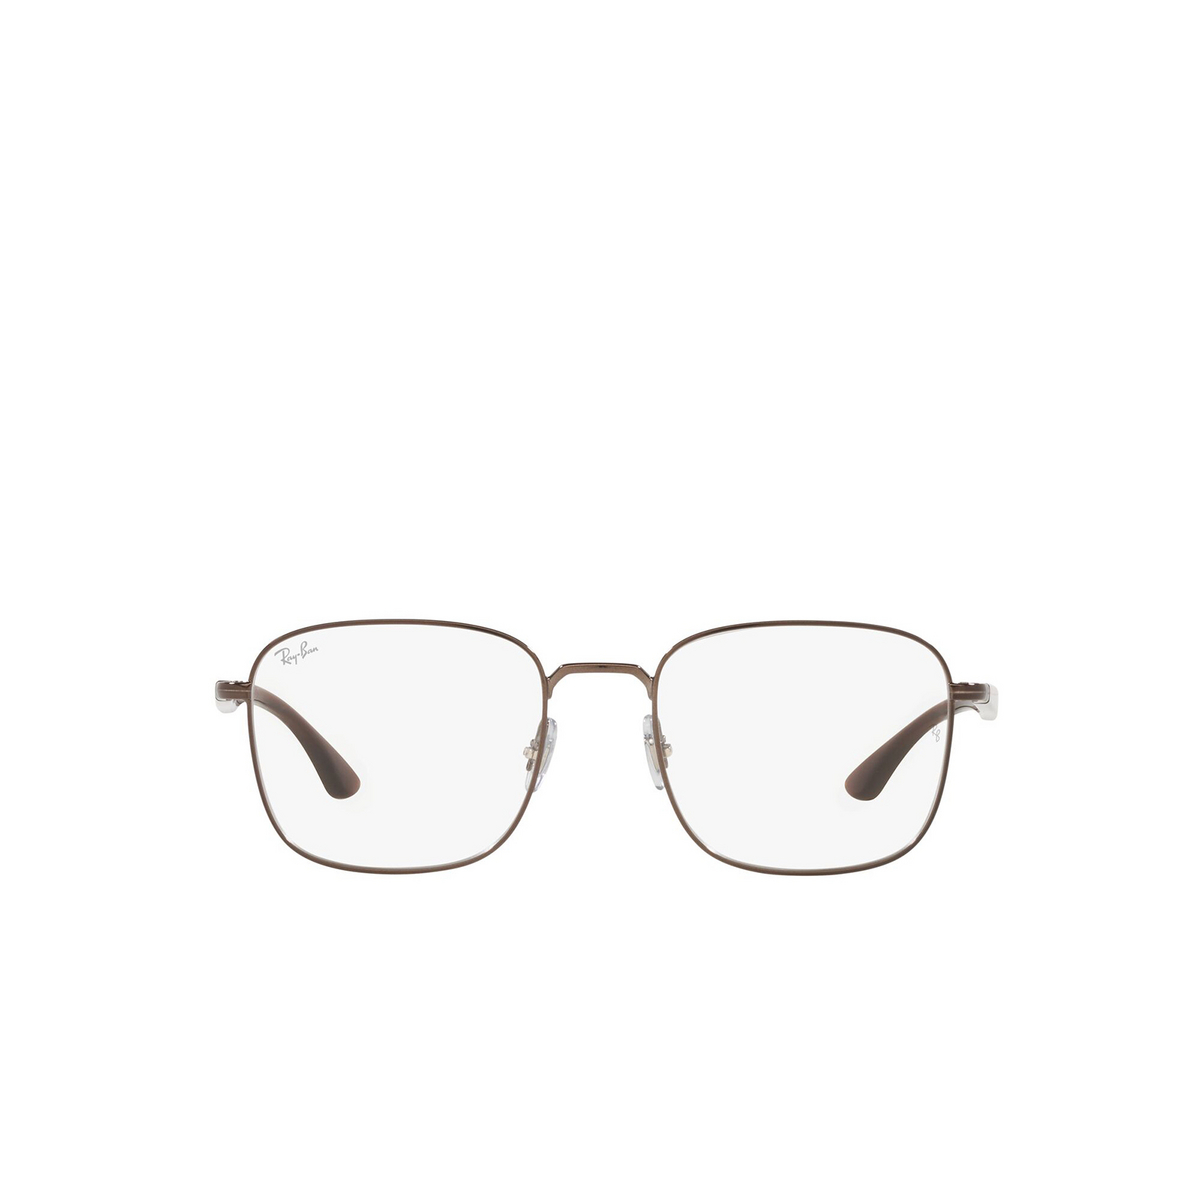 Ray-Ban® Square Eyeglasses: RX6469 color Dark Brown 3110 - front view.